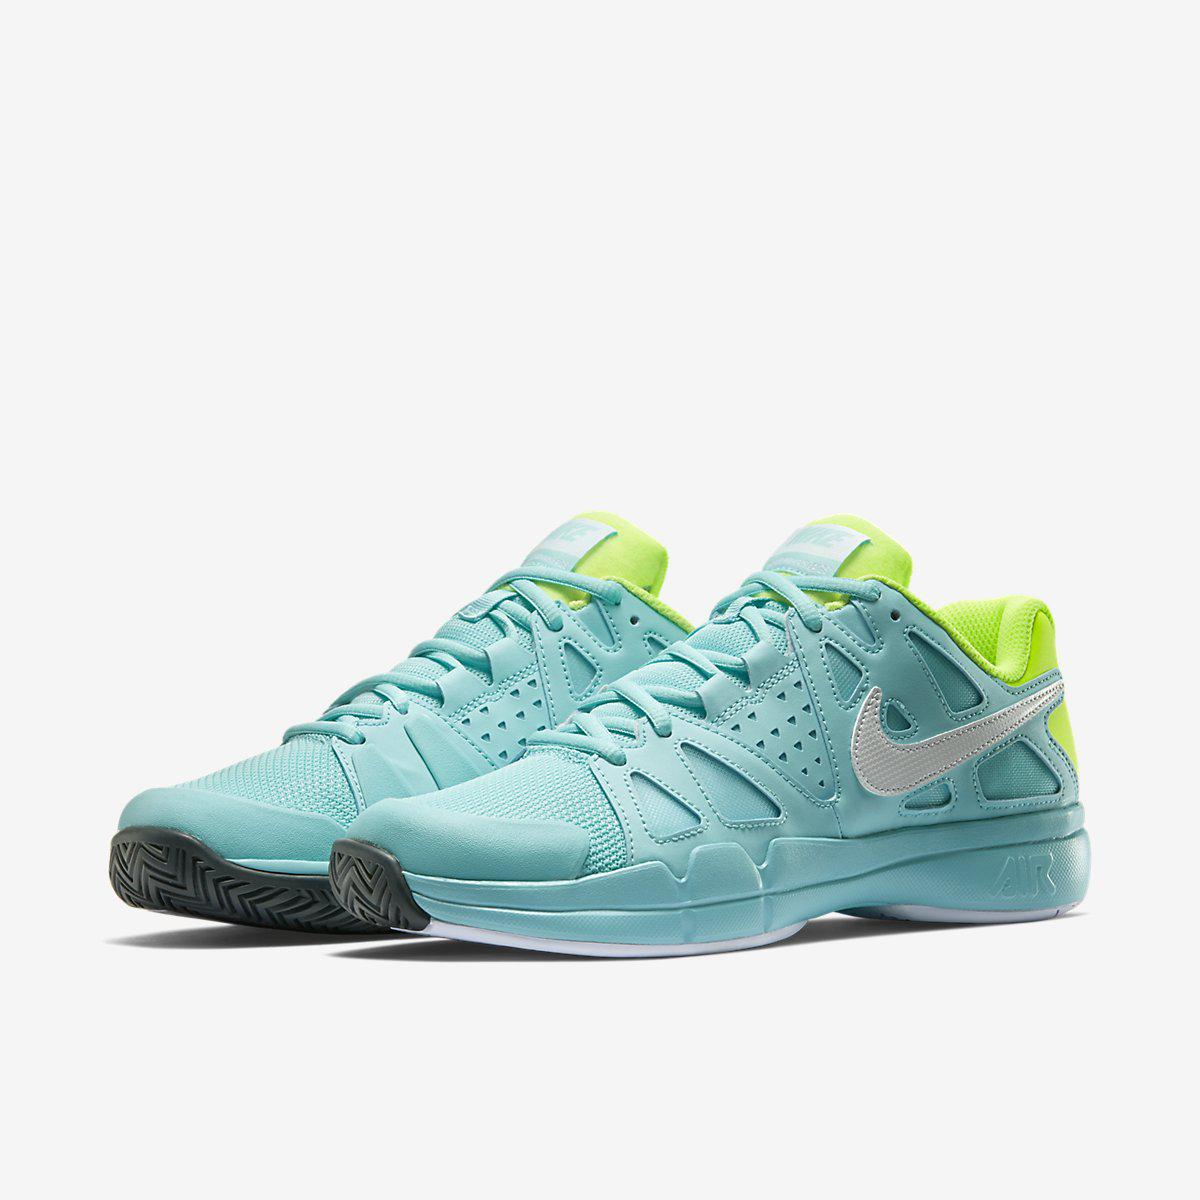 Out Of Stock. Nike Womens Air Vapor Advantage Tennis Shoes ...